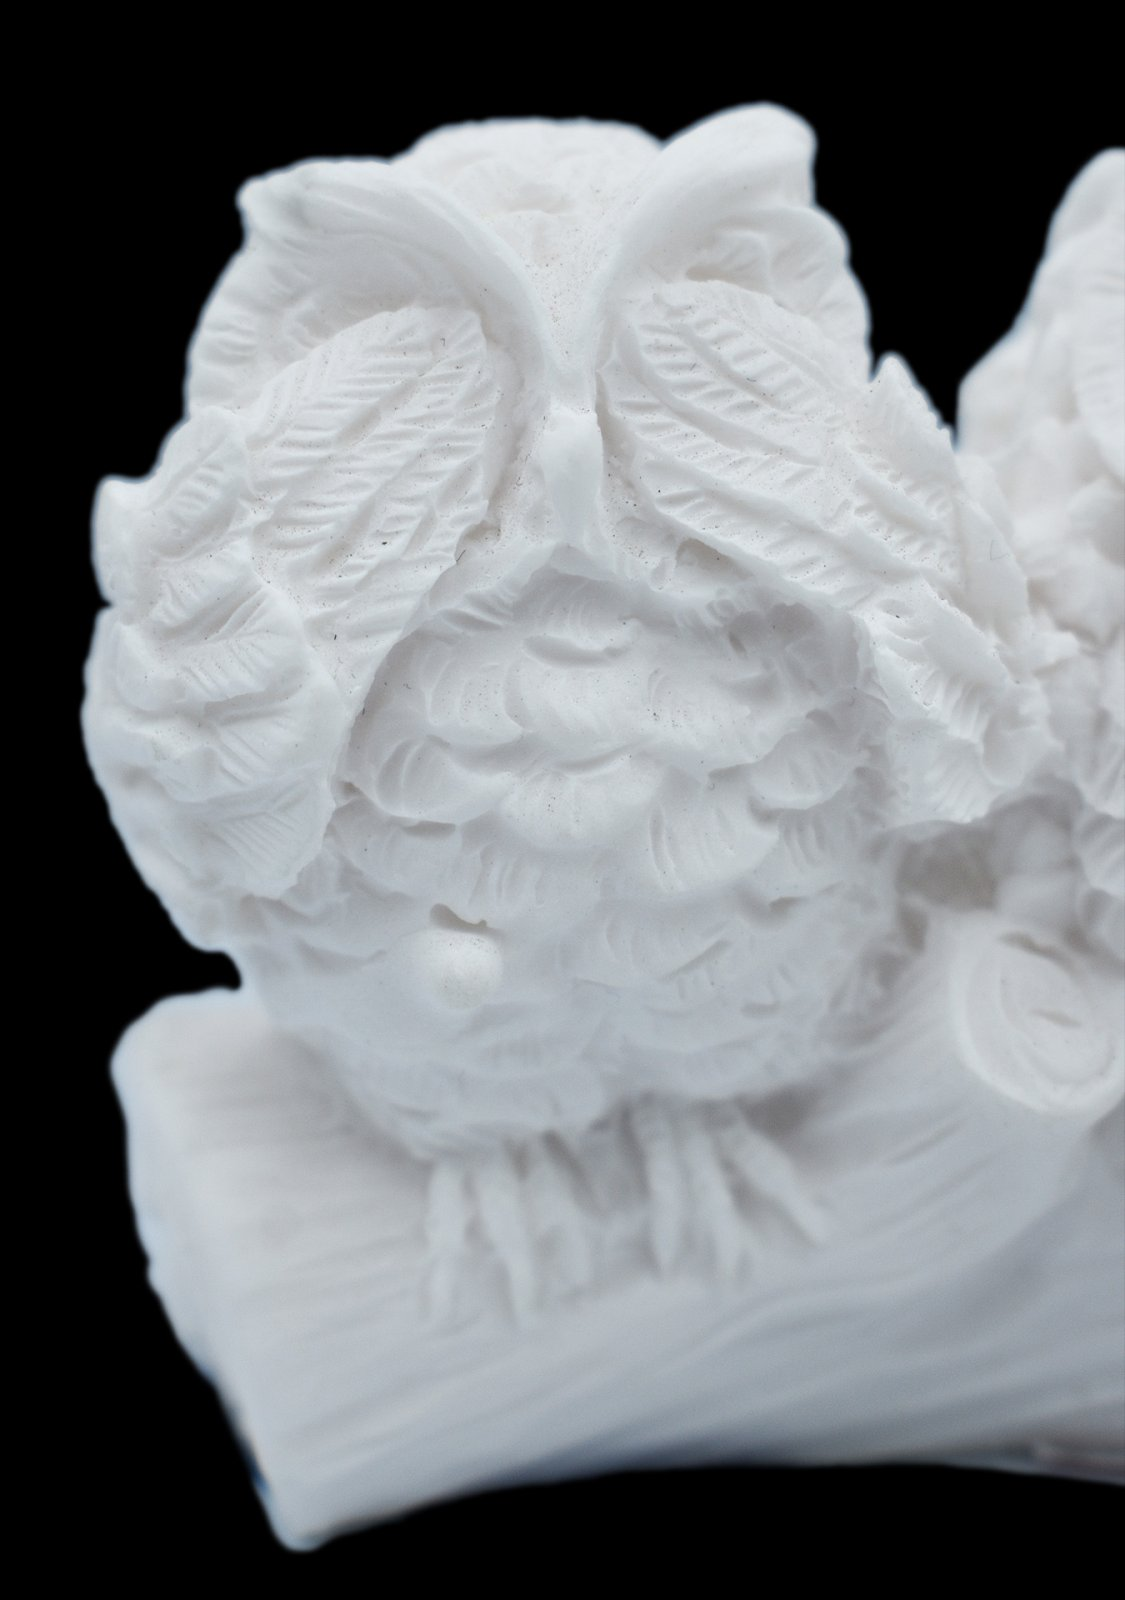 The three wise owls alabaster statue, the symbol of goddess Athena and wisdom